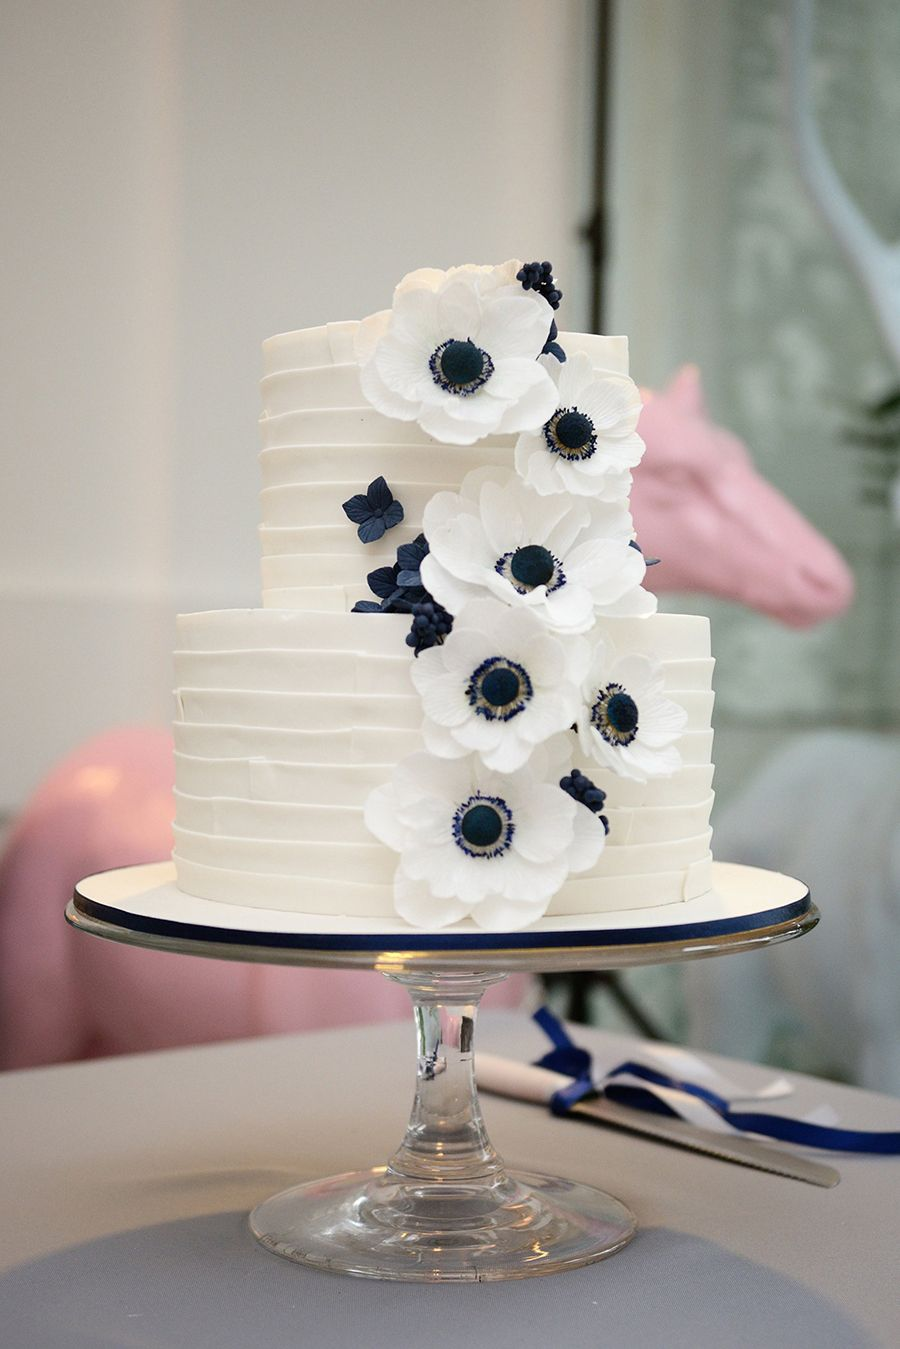 Top 10 wedding cake creators in malaysia part 1 wedding cake classy white and black tiered wedding cake with sugar flowers top 10 wedding cake dhlflorist Image collections